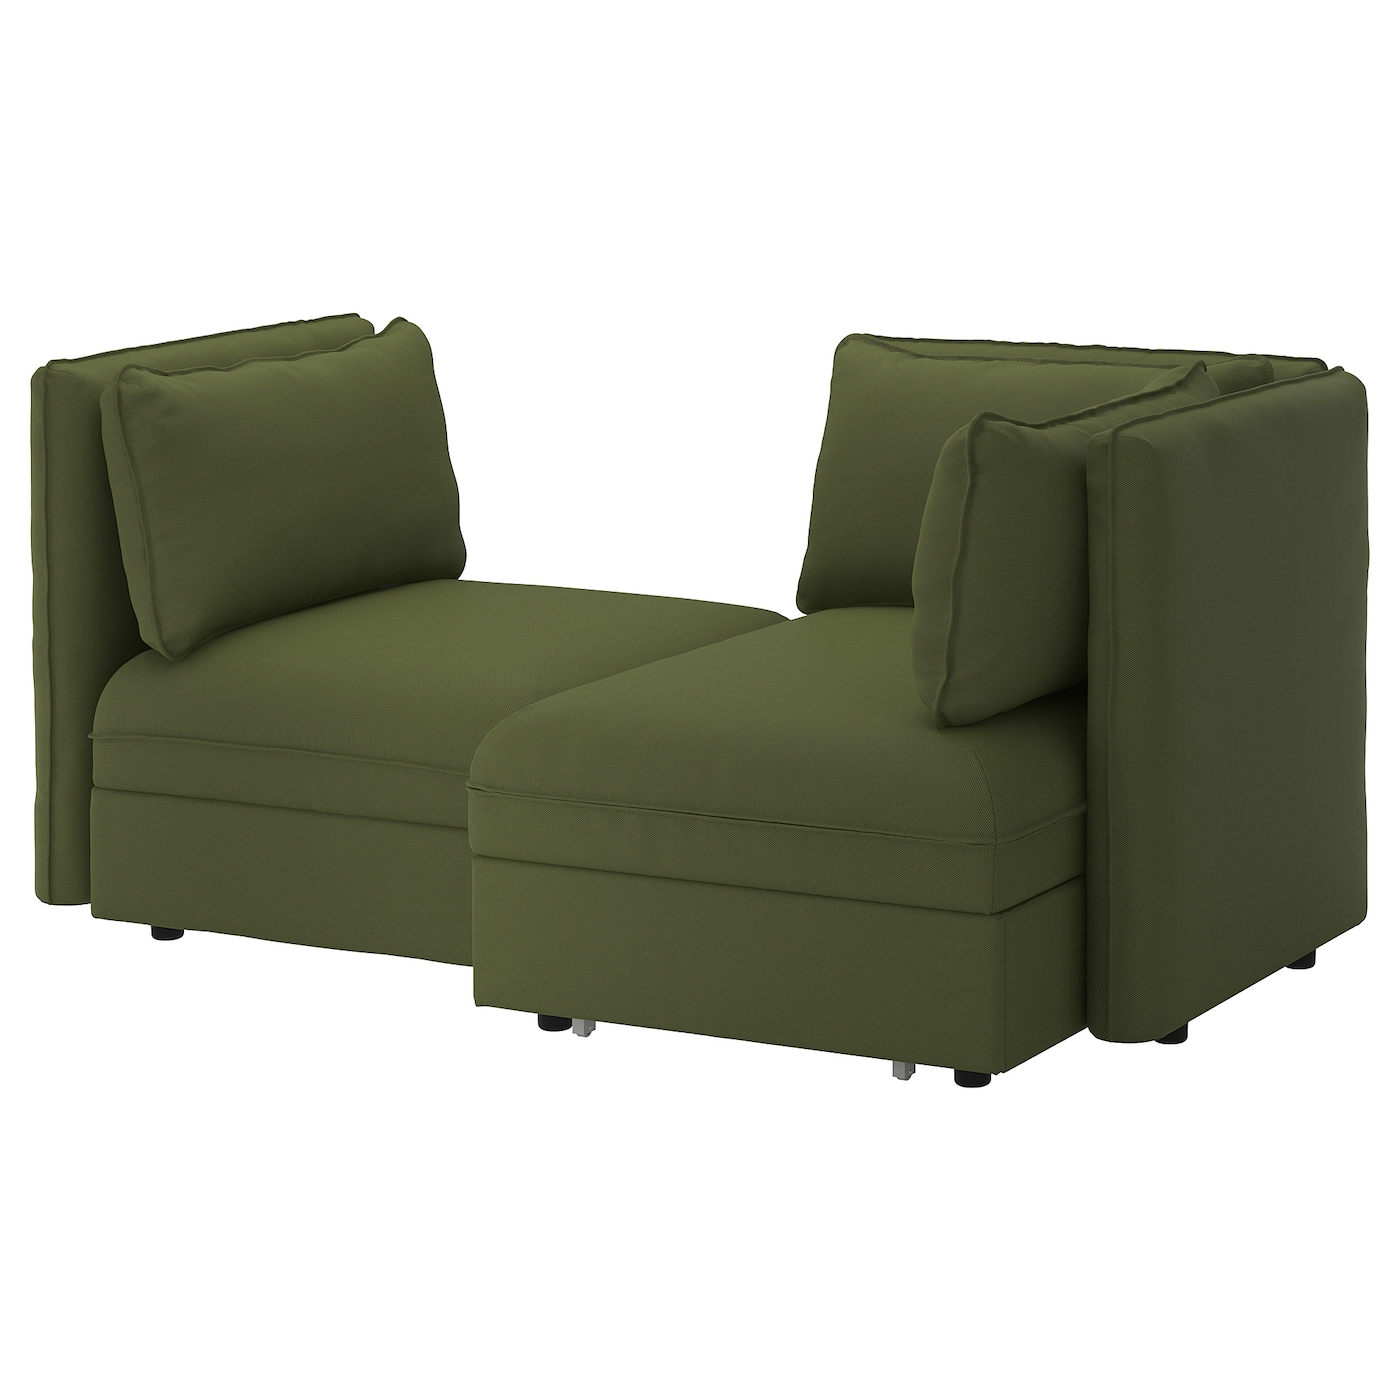 Ikea Vallentuna 2 Seat Modular Sofa With Bed